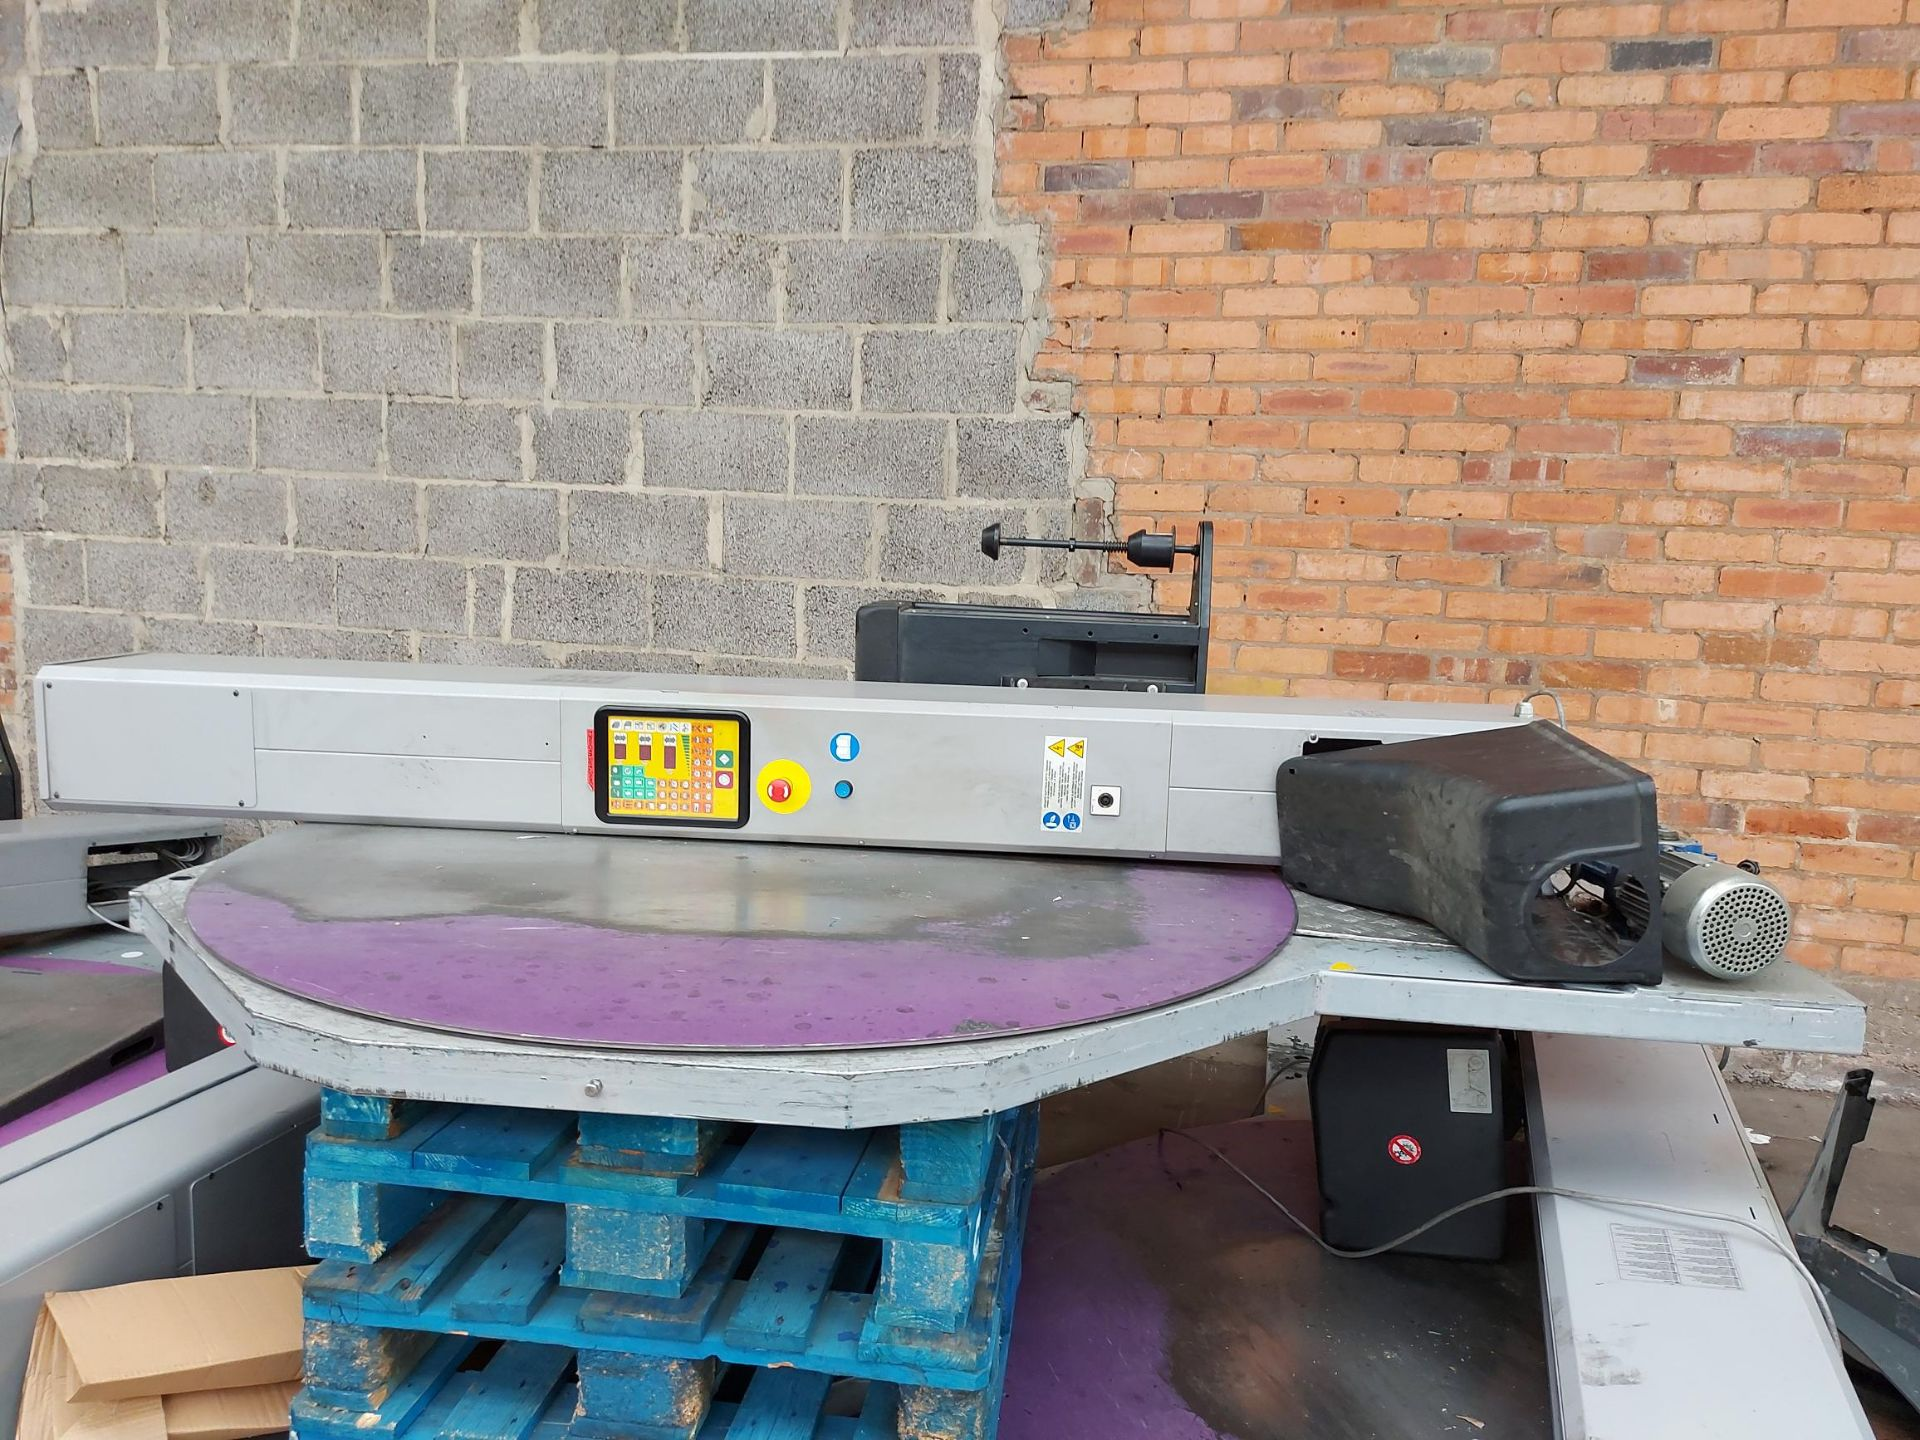 2016 ATLANTA FULL 115 DYNAMIC HIGHLINE TURNTABLE PALLET WRAPPING MACHINE WITH RAMP. 2.4M MAST - Image 4 of 5